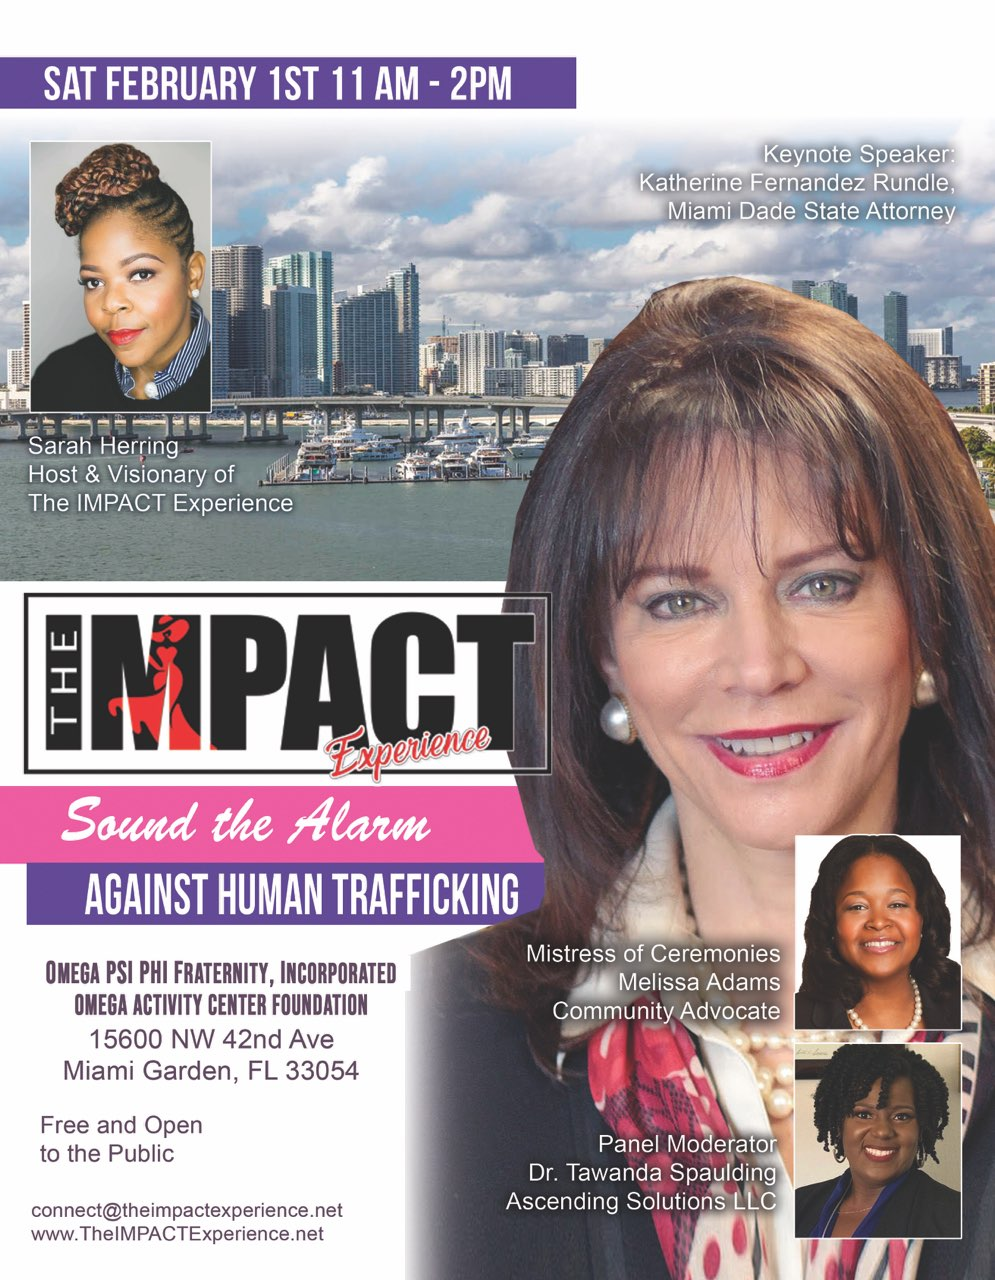 The IMPACT Experience Miami, FL